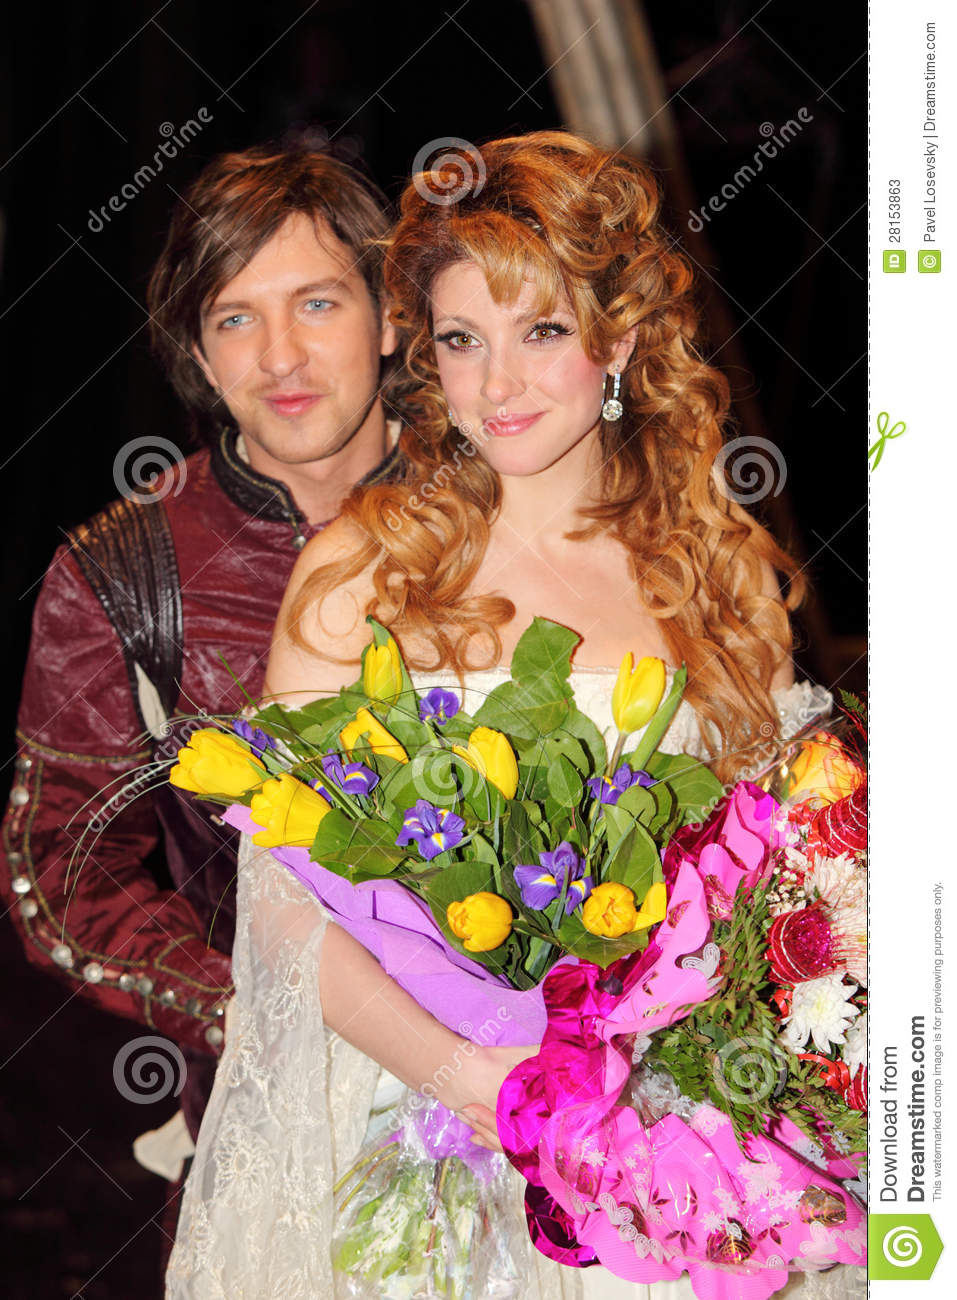 Actress Anastasia Makeeva gets divorced due to the fact that her husband does not want children 12.04.2016 52